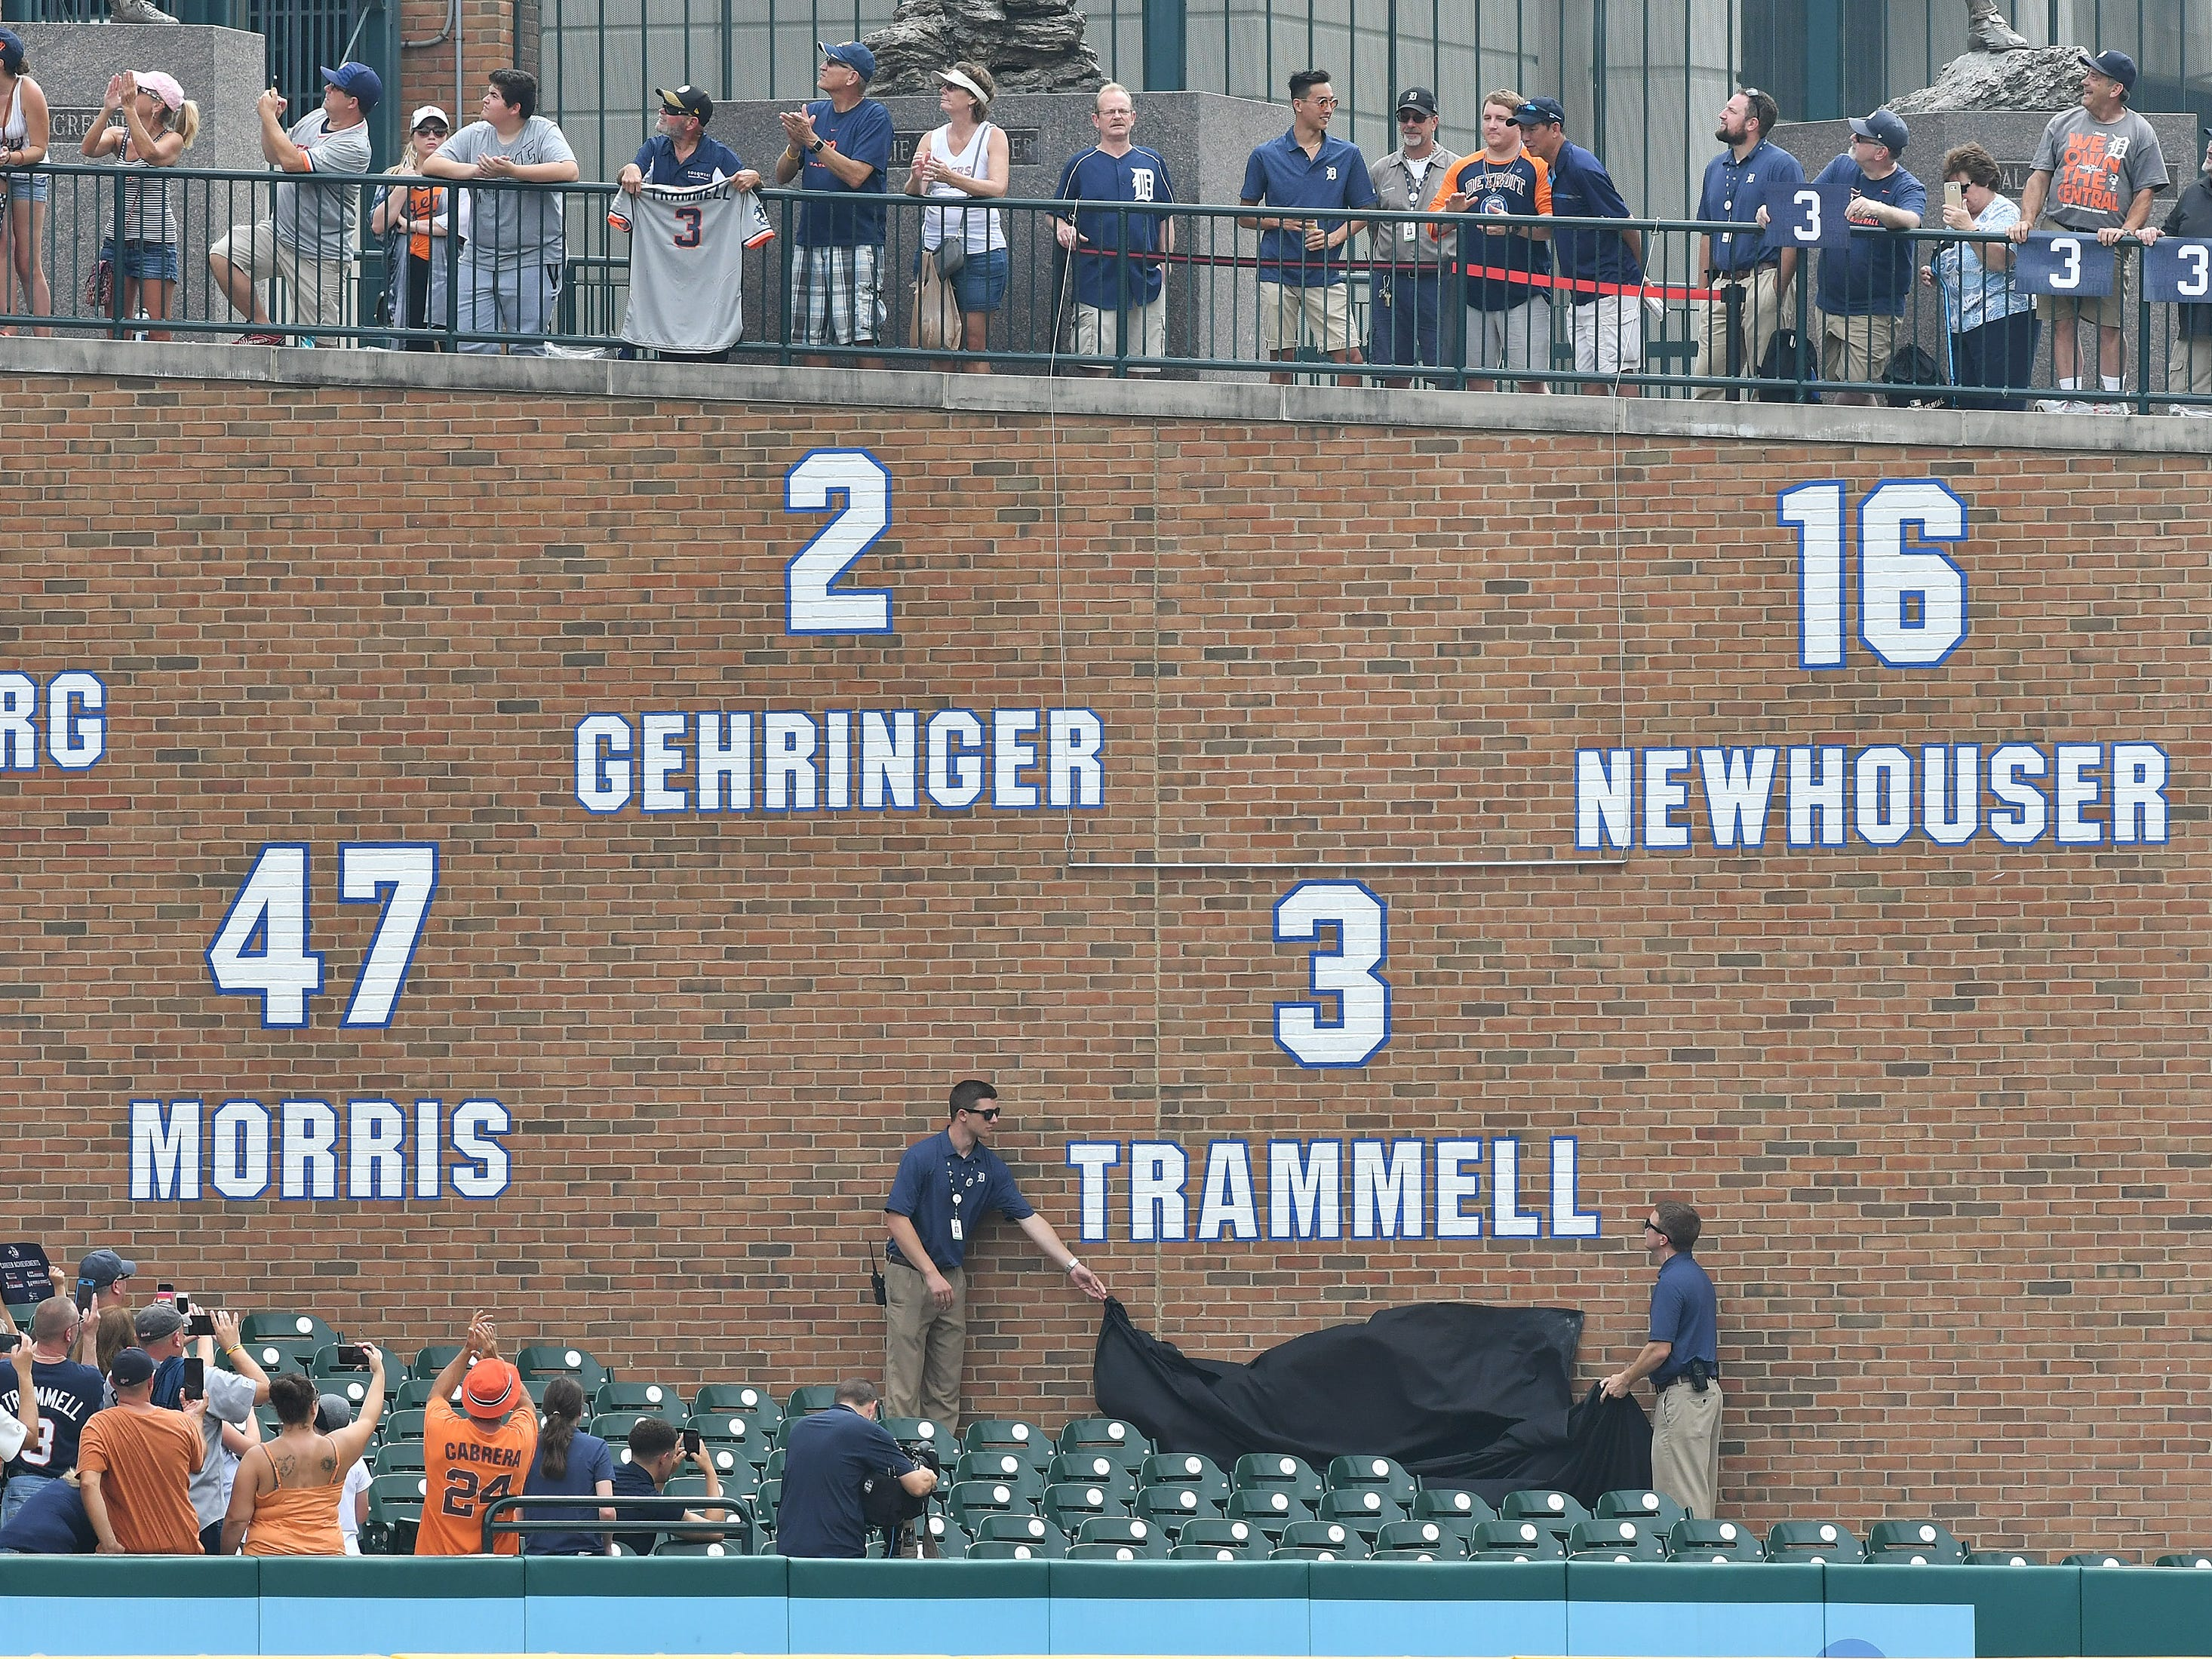 The No. 3 is unveiled during a special pregame ceremony to retire the number of former Tiger shortstop and Hall of Fame shortstop Alan Trammell.